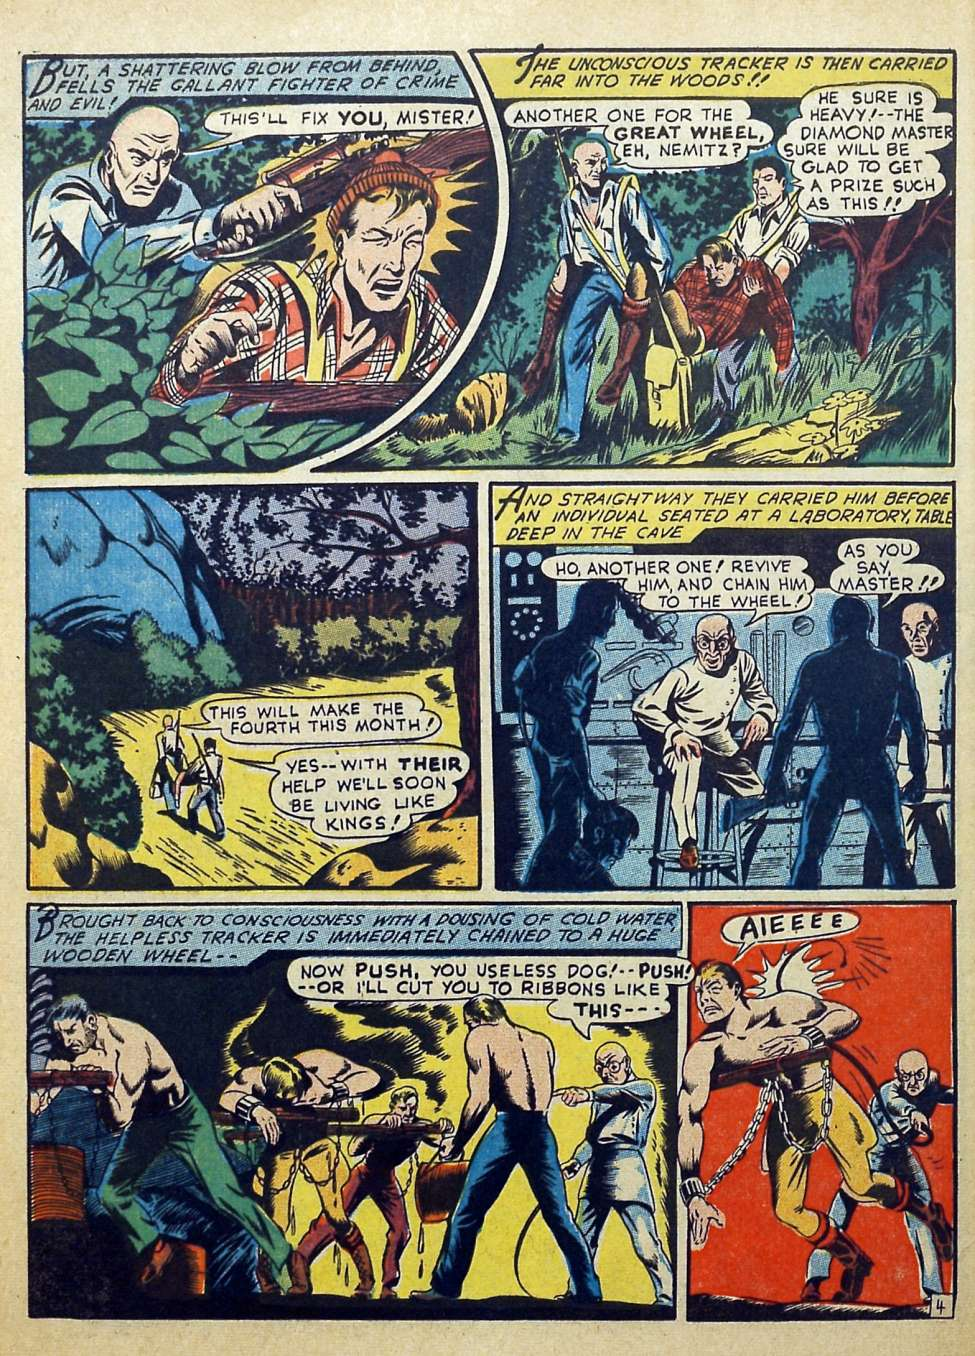 Suspense Comics #3 from 1944 48